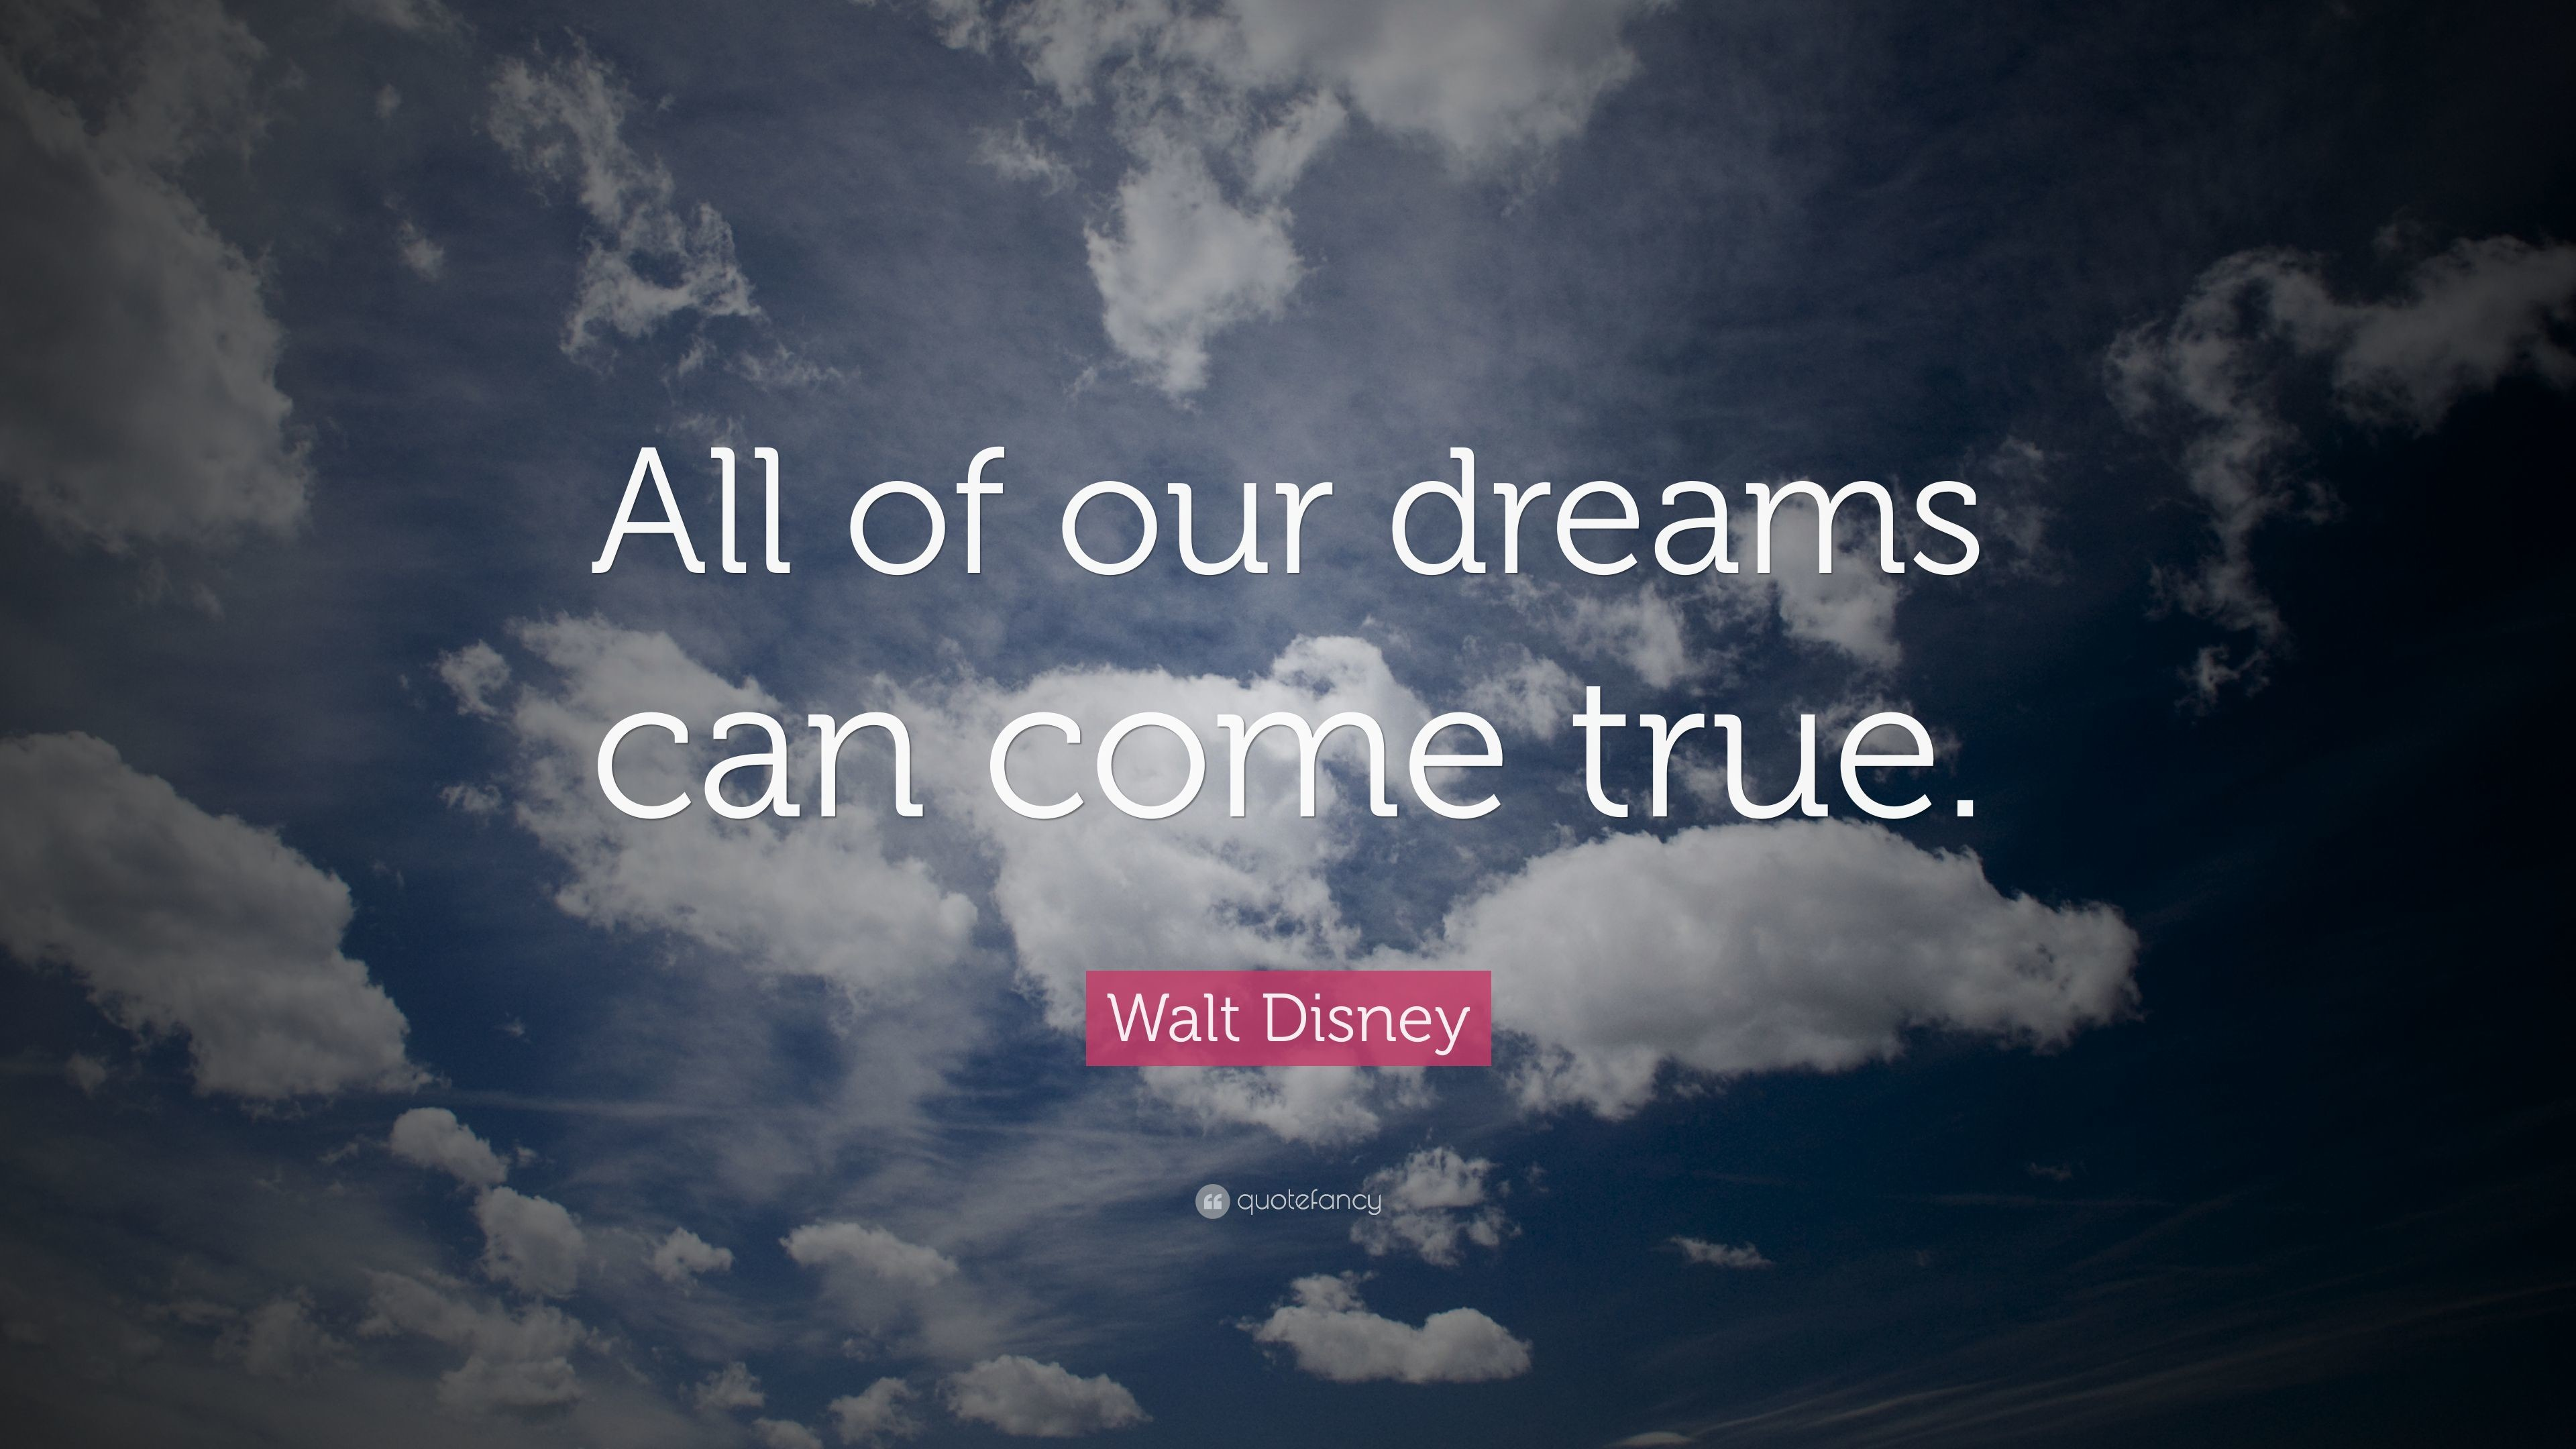 Disney quote wallpaper